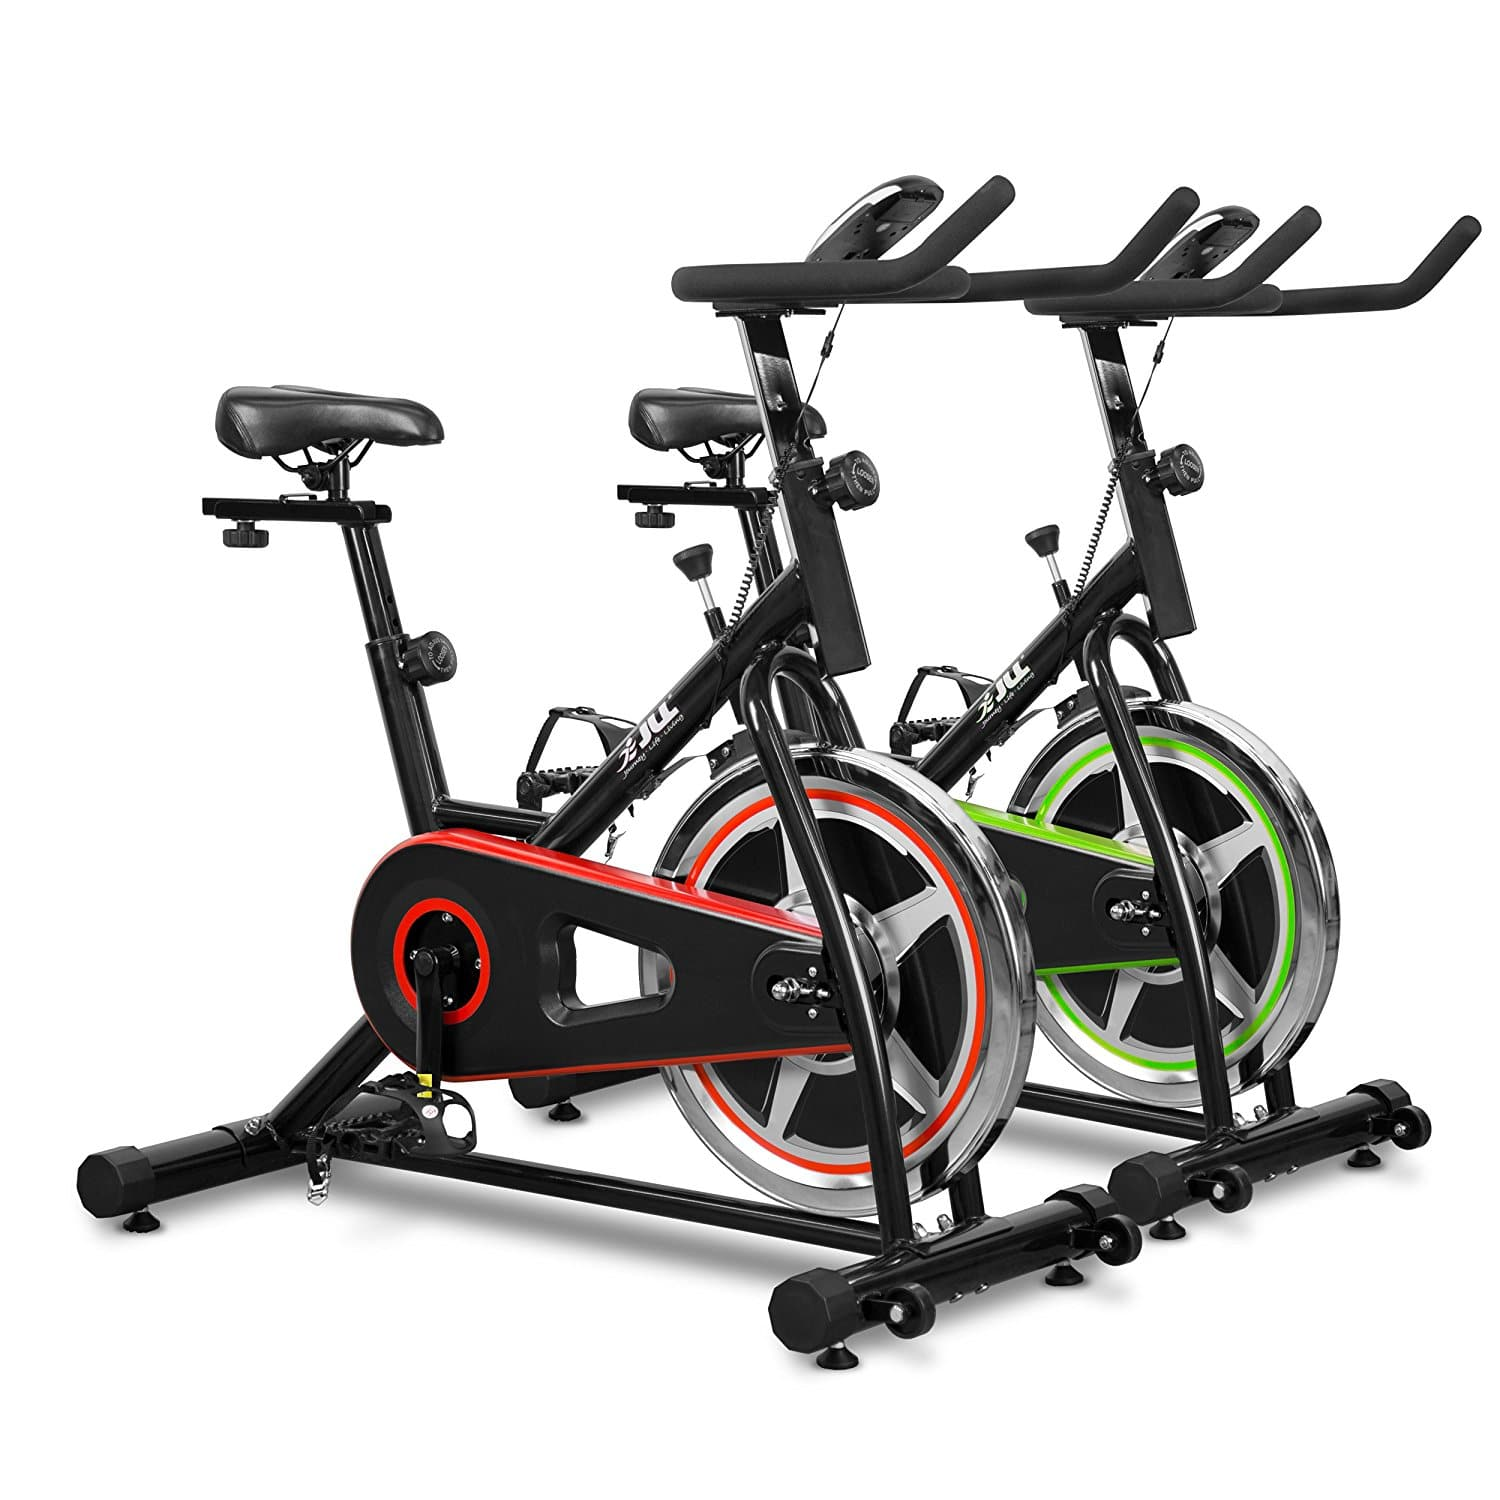 jll-ic200-indoor-cycling-exercise-bike